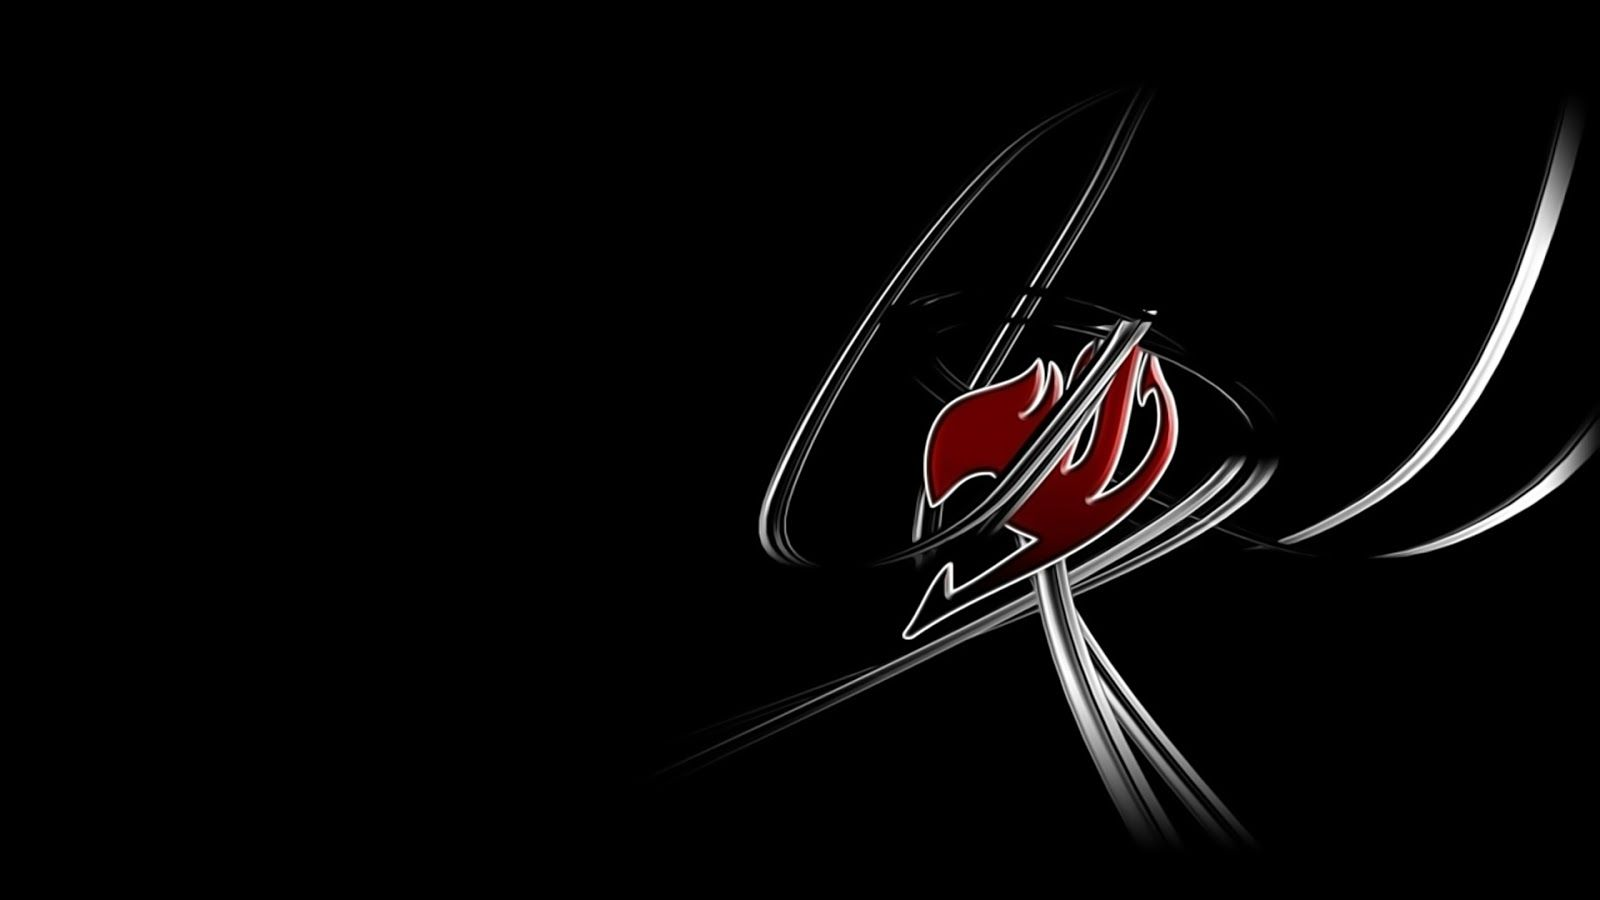 fairy tail logo hd wallpaper for android gendiswallpapercom